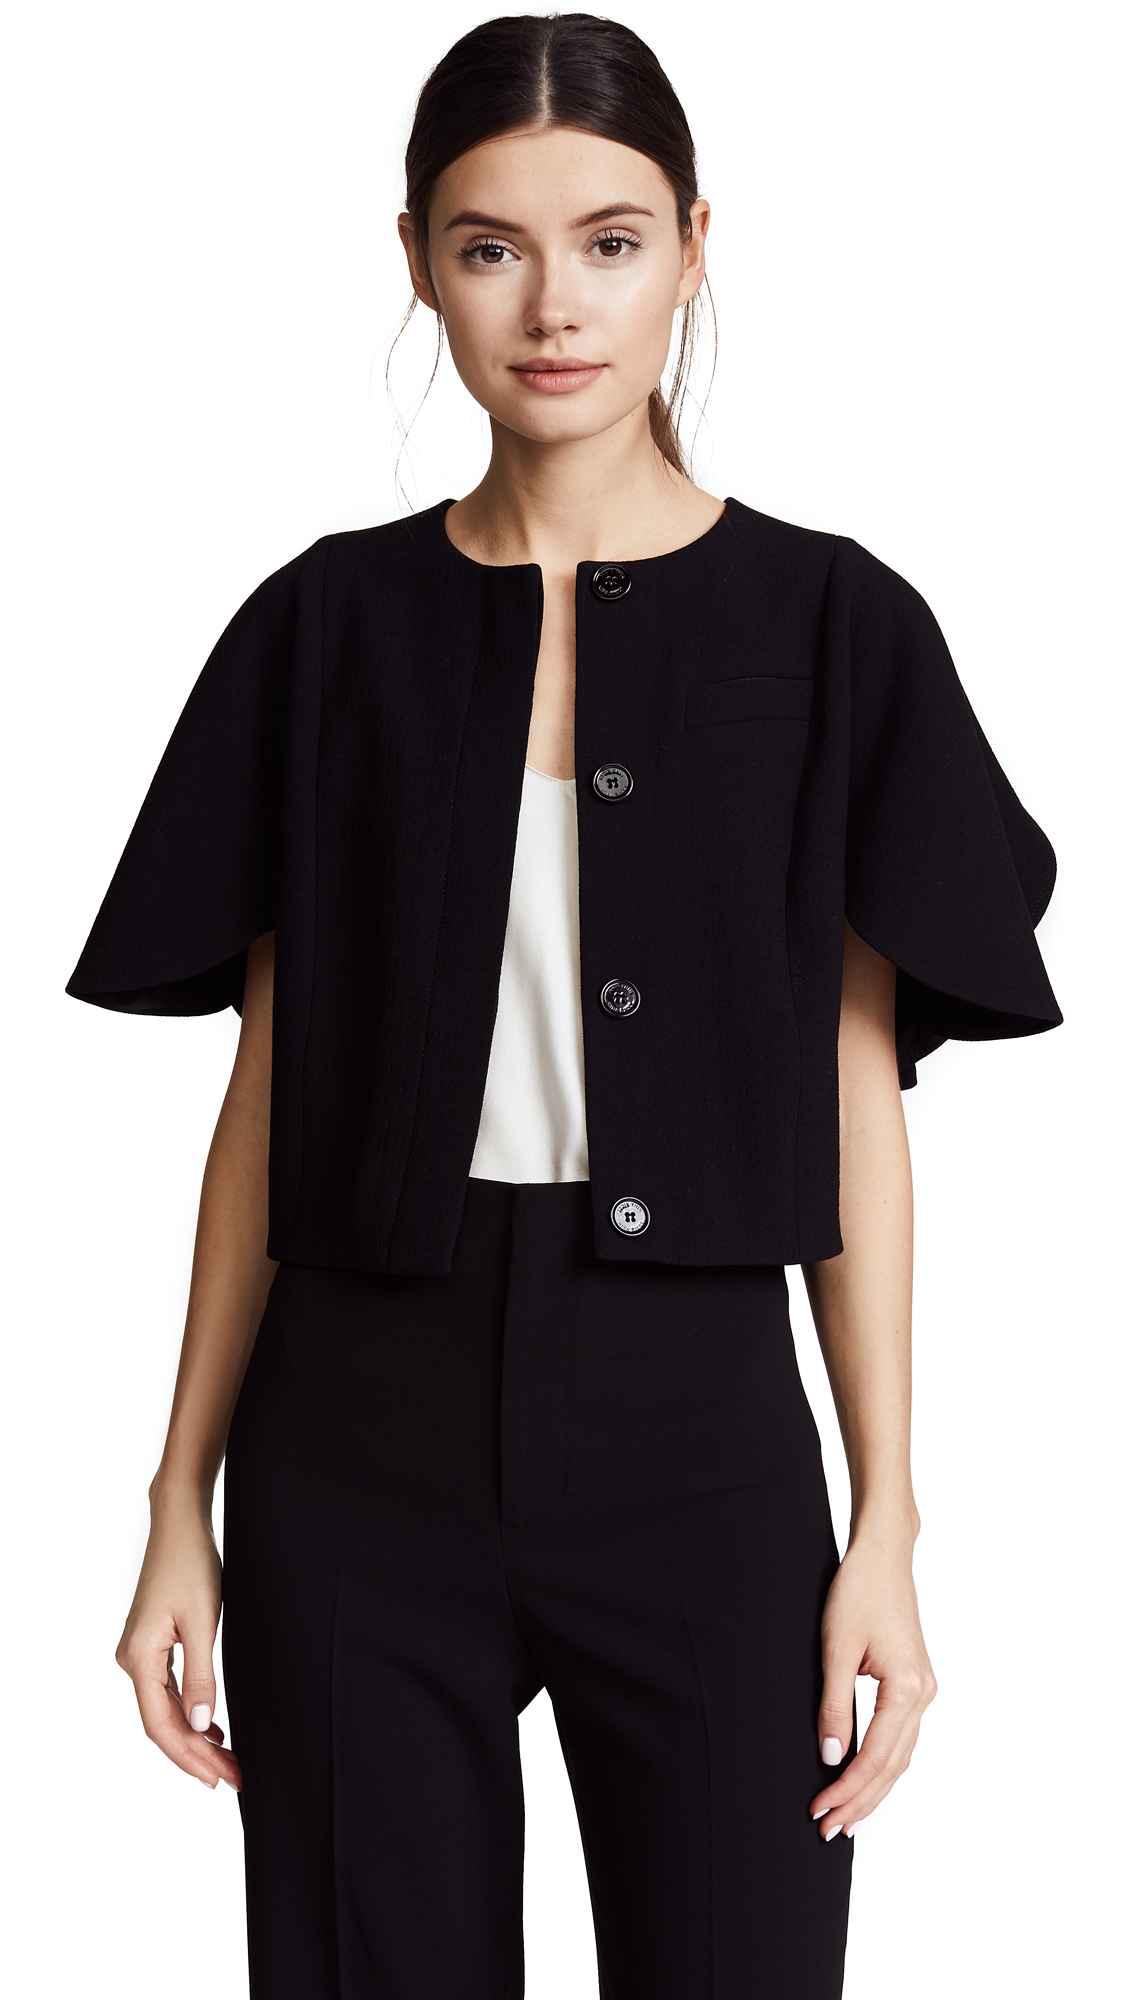 Nina Ricci Stretch Wool Crepe Short Jacket - Black